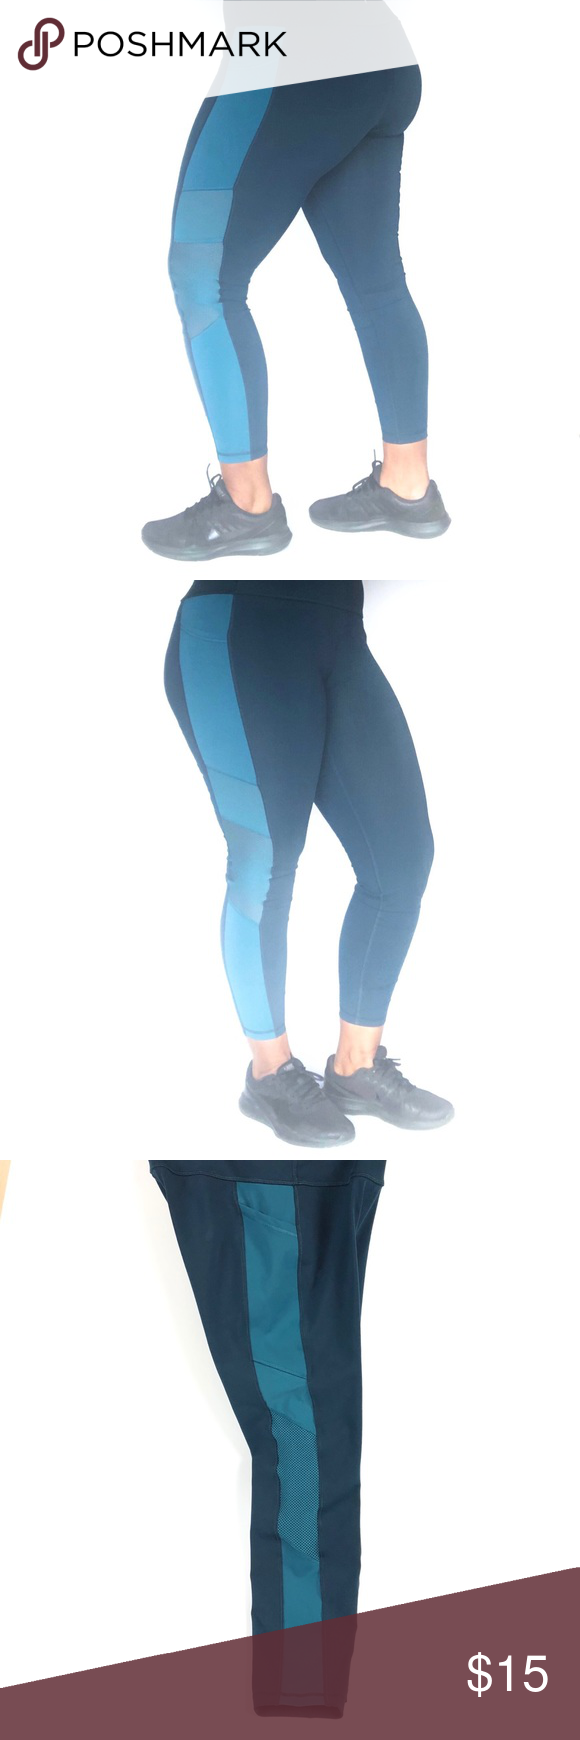 Workout & Training Leggings - 2 items for $20 Workout & Training Leggings - 2 items for $20 High-wai...